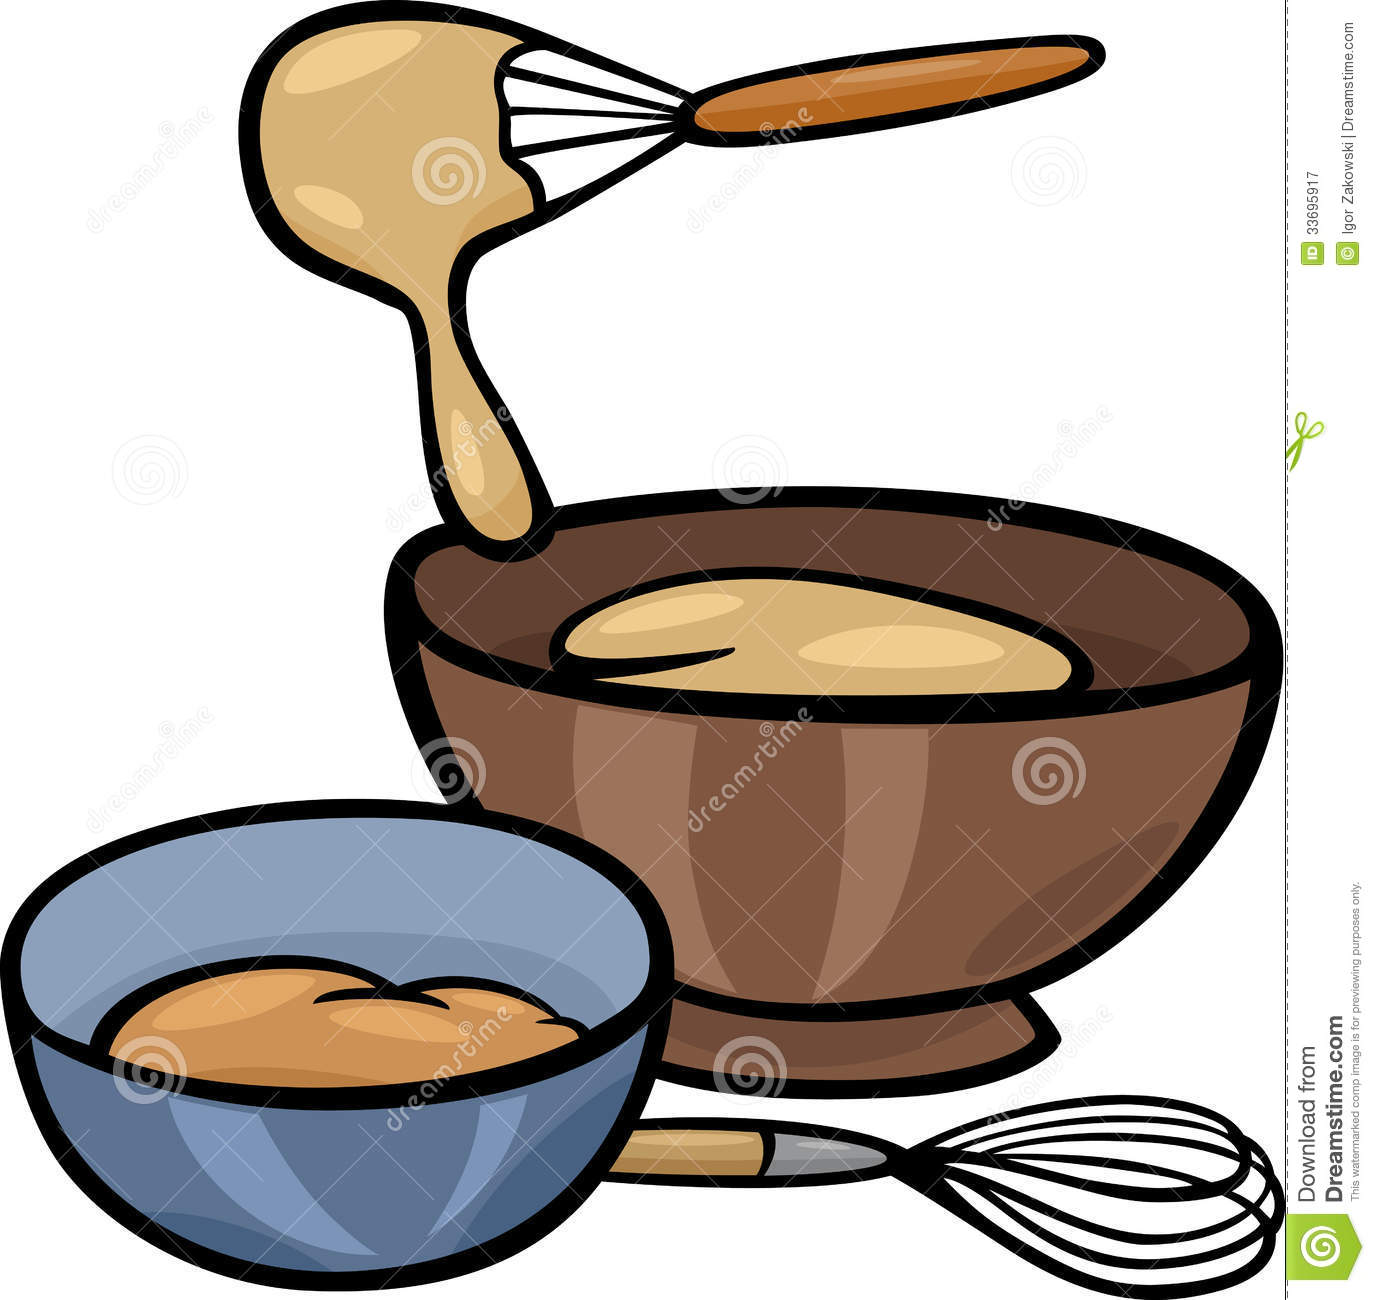 cooking bowl clipart - photo #27